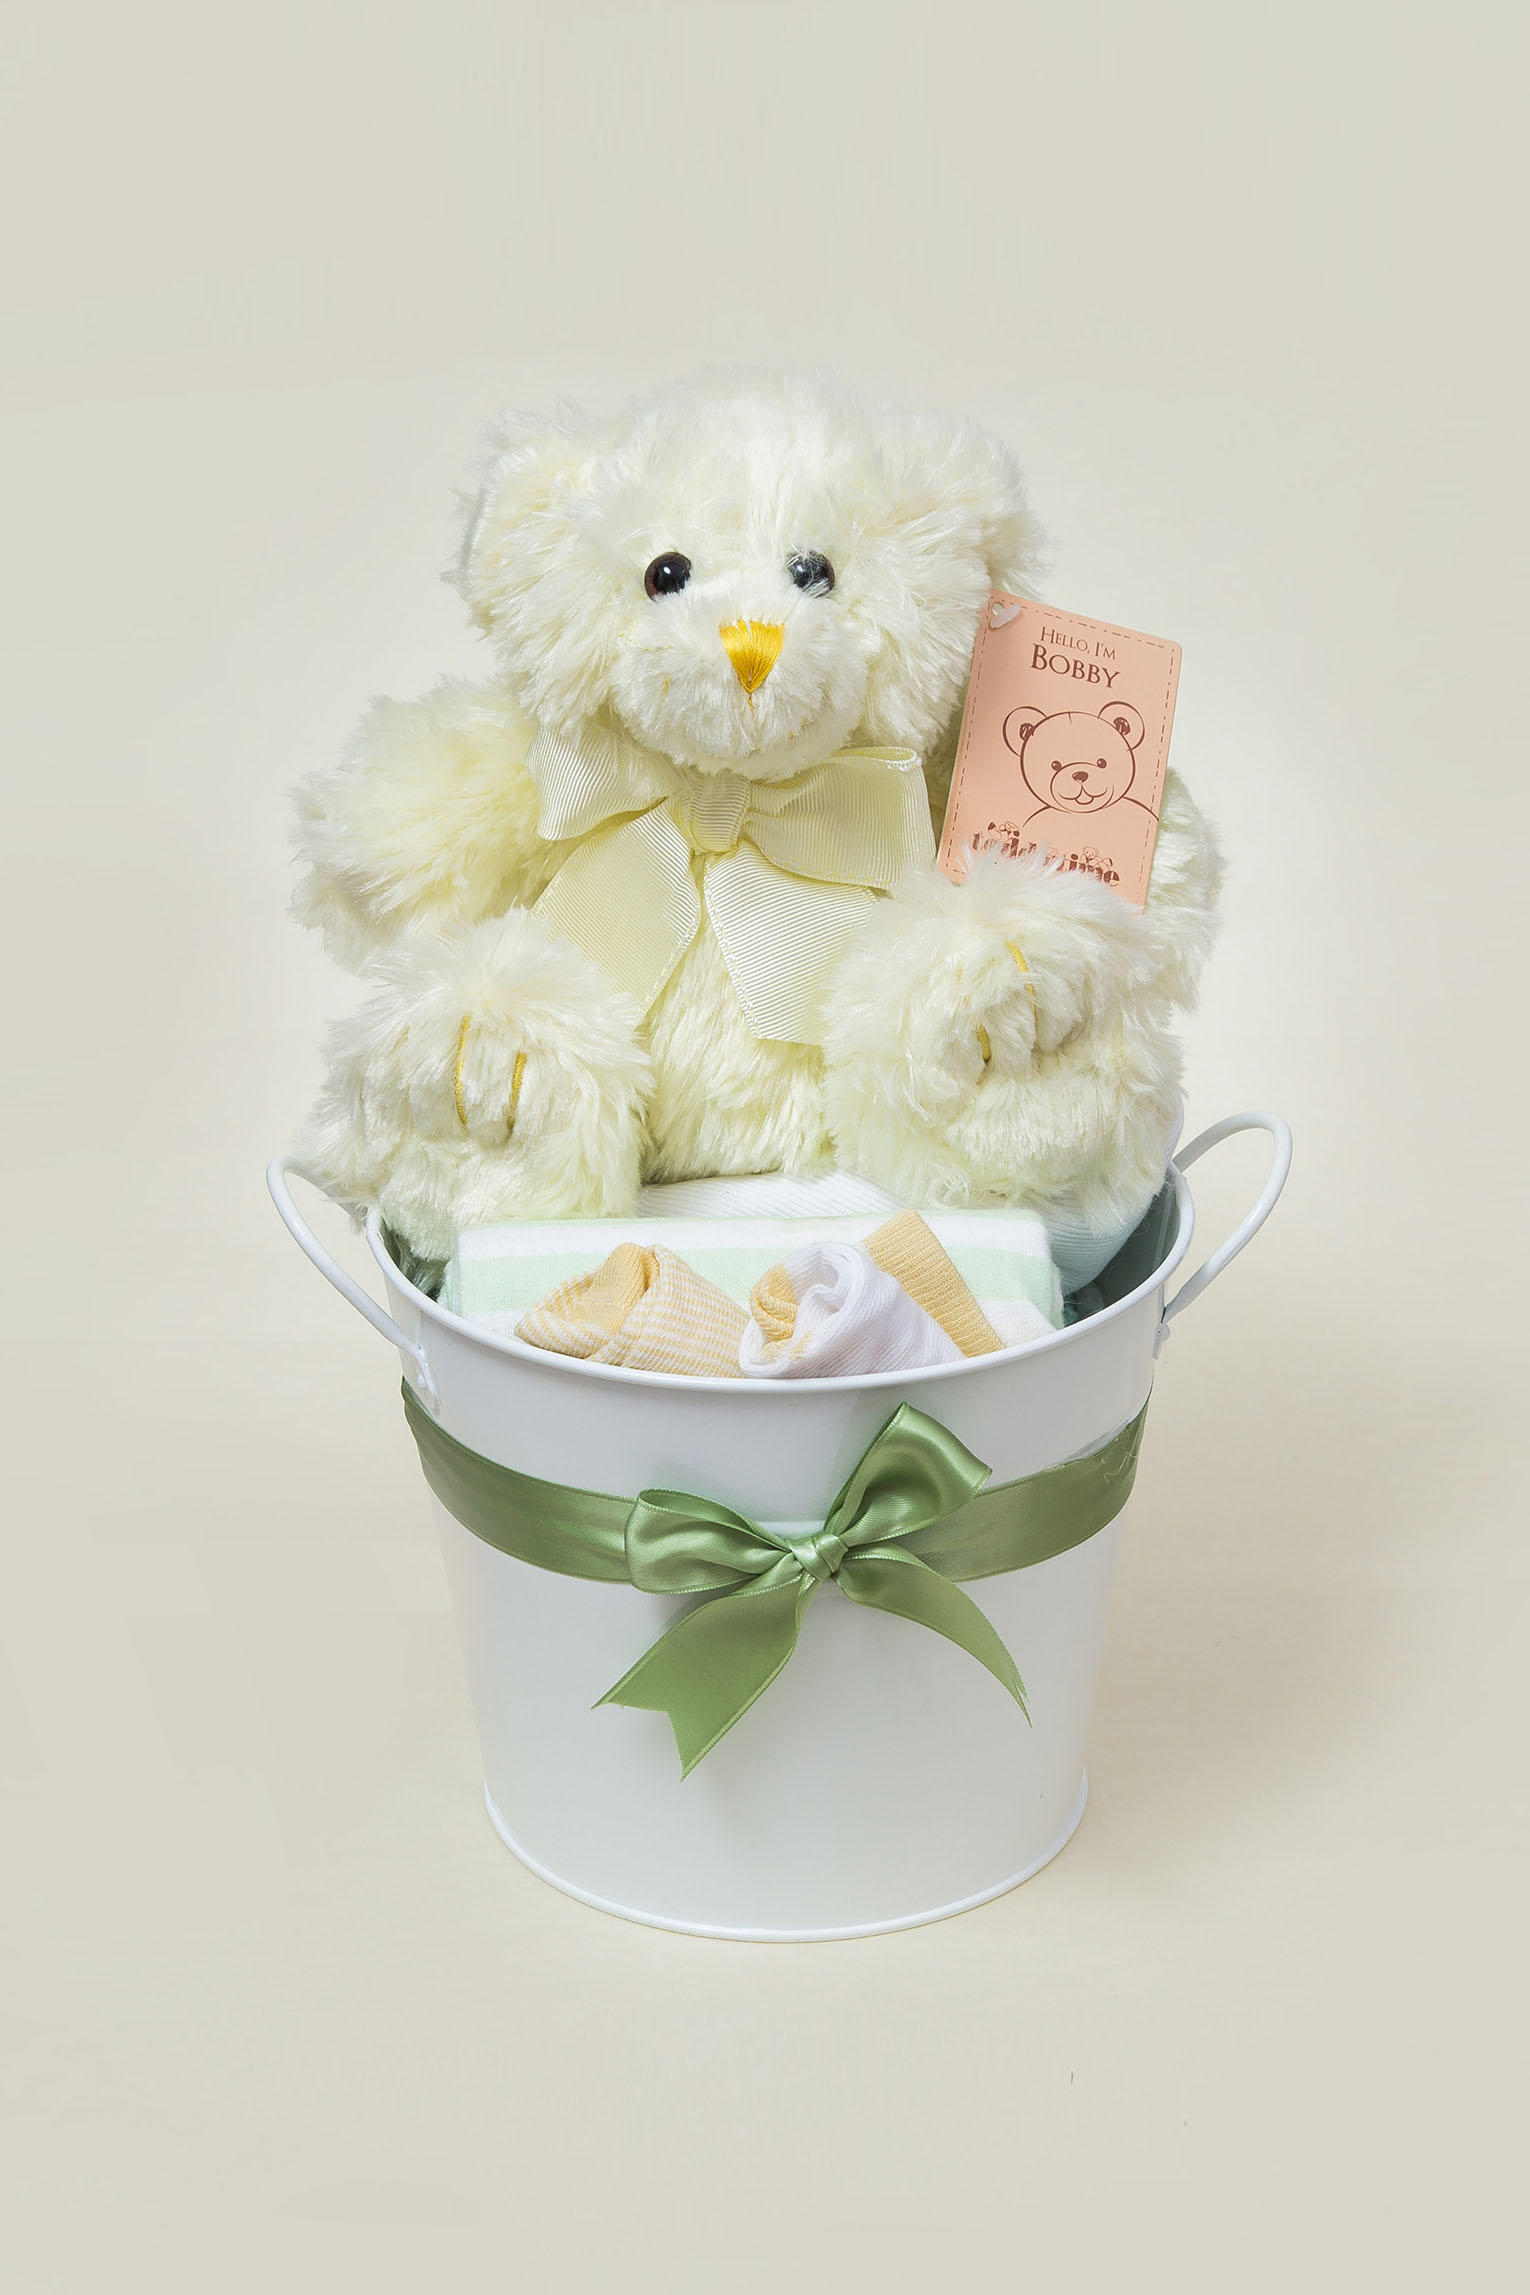 baby-stitch-penrith-product-photography-03